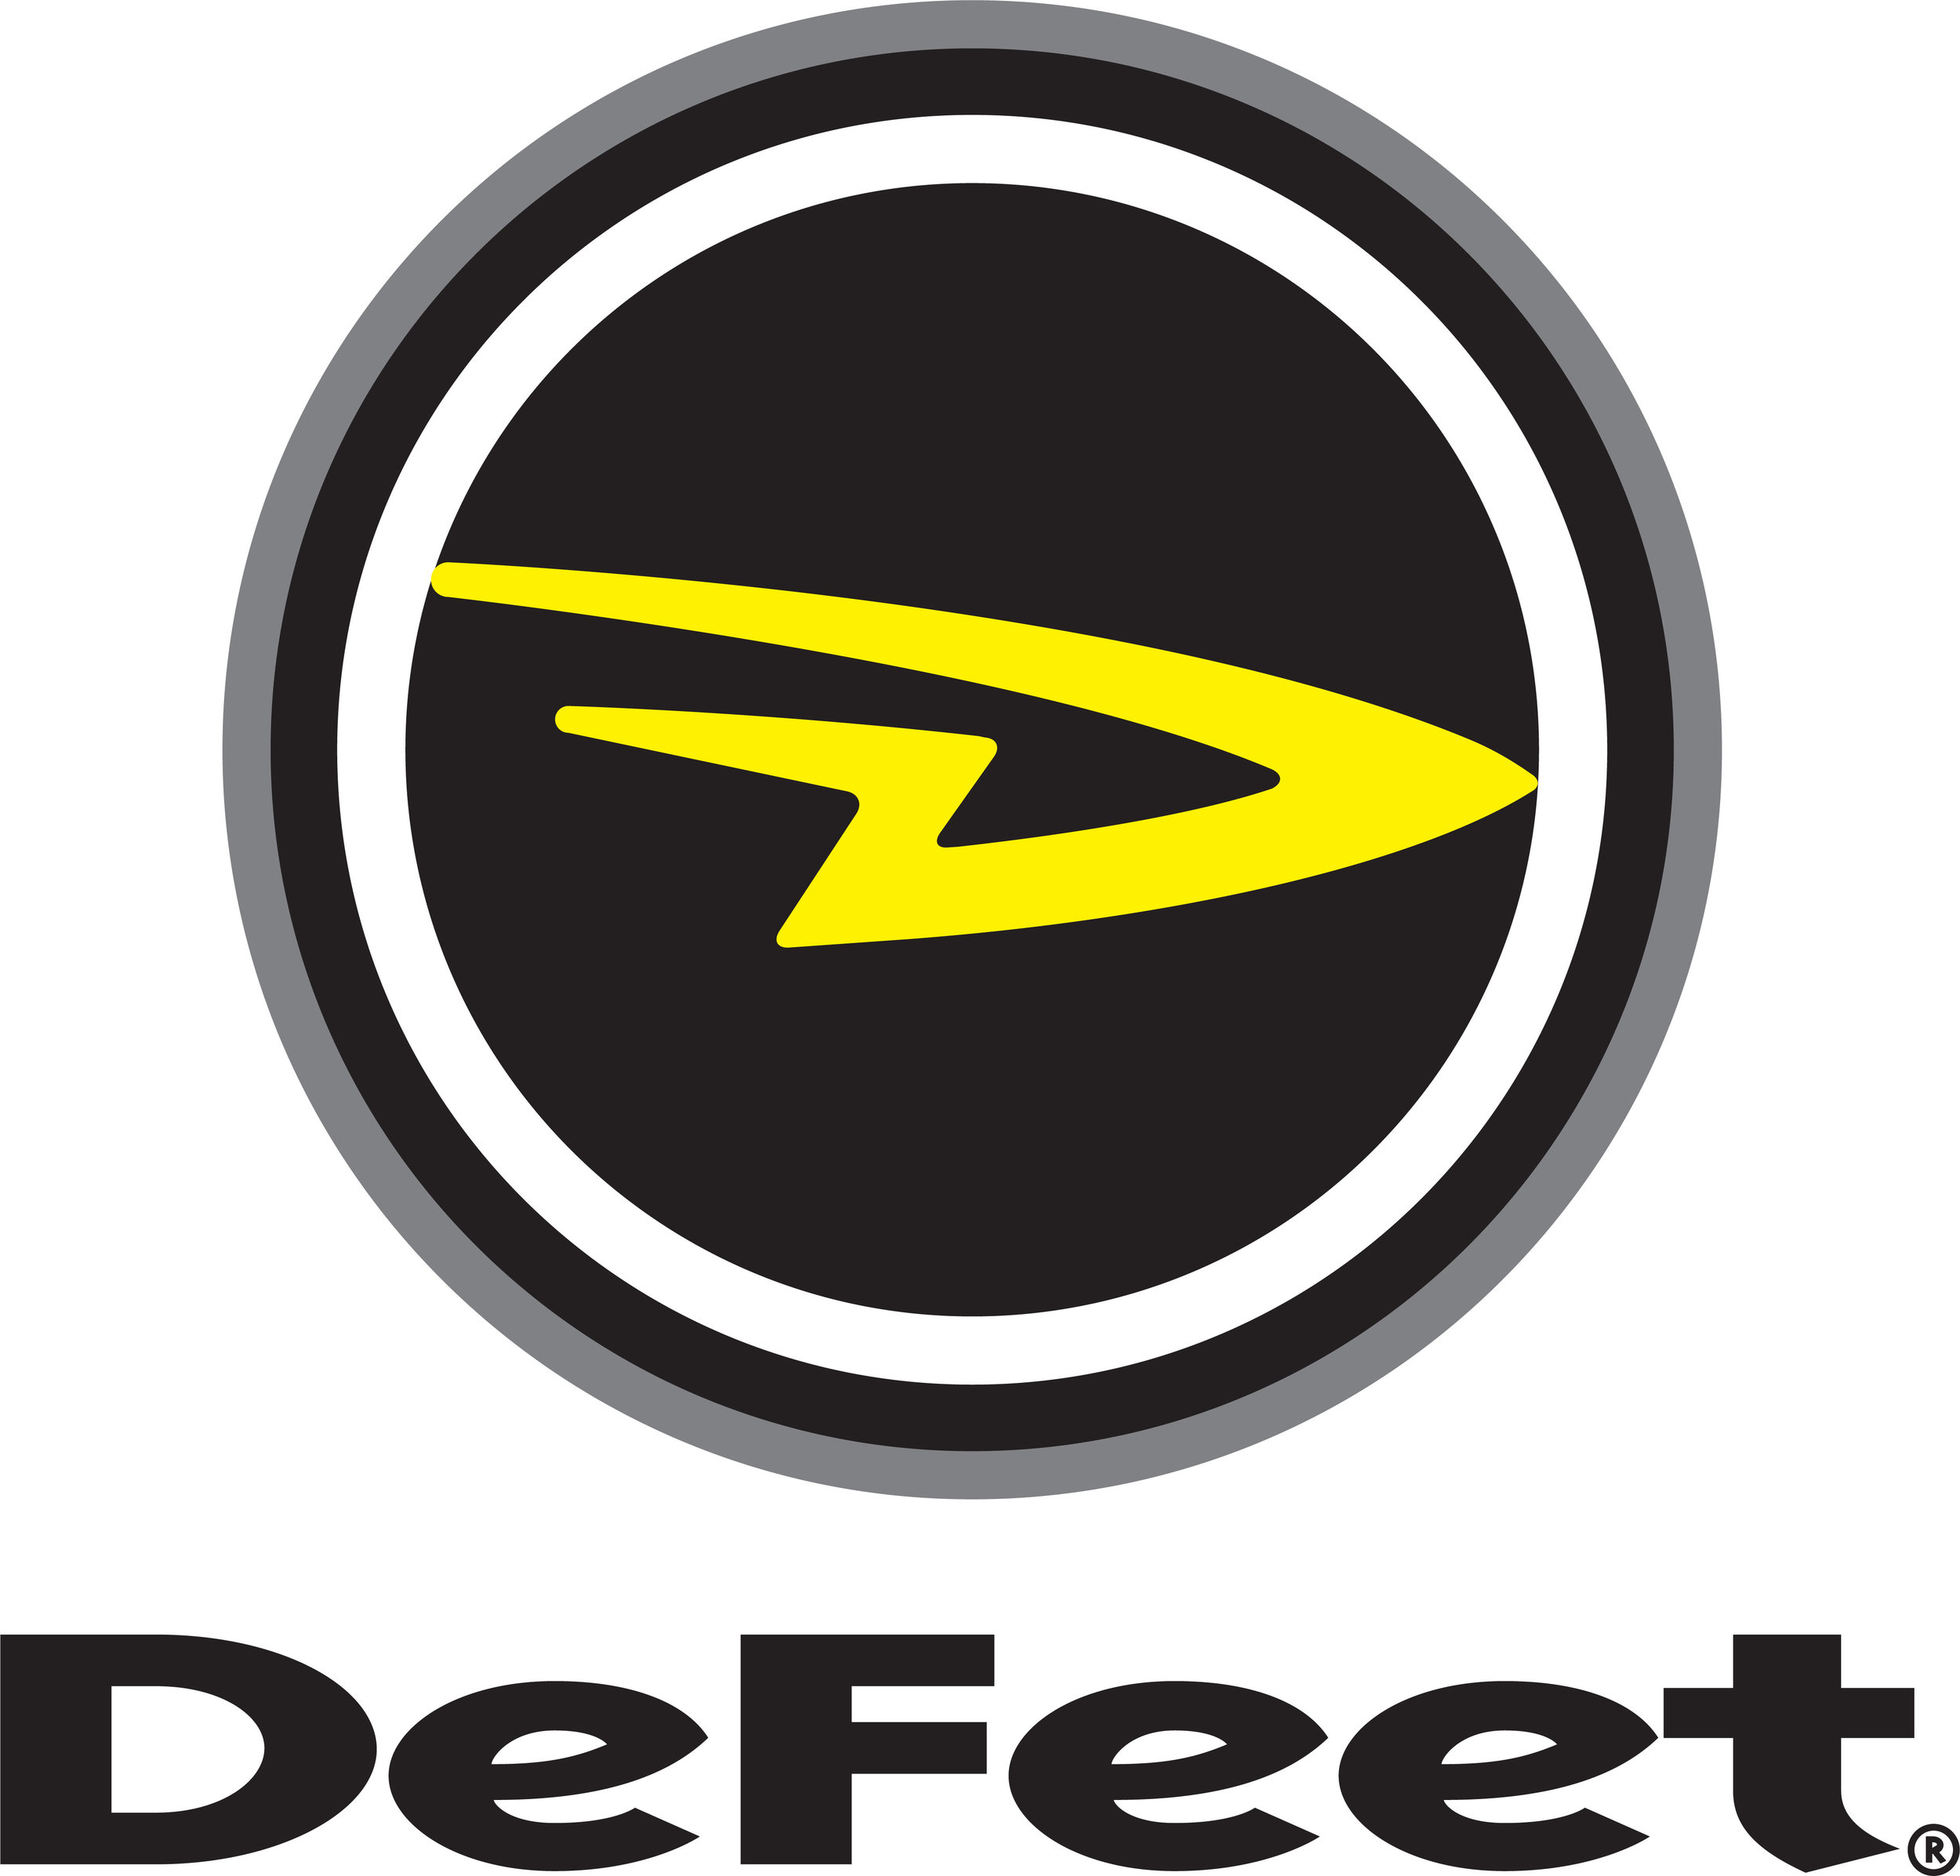 Innovation, Spirit, and Craftsmanship for the sports we love! Defeet is our go to for socks as wild as we are.